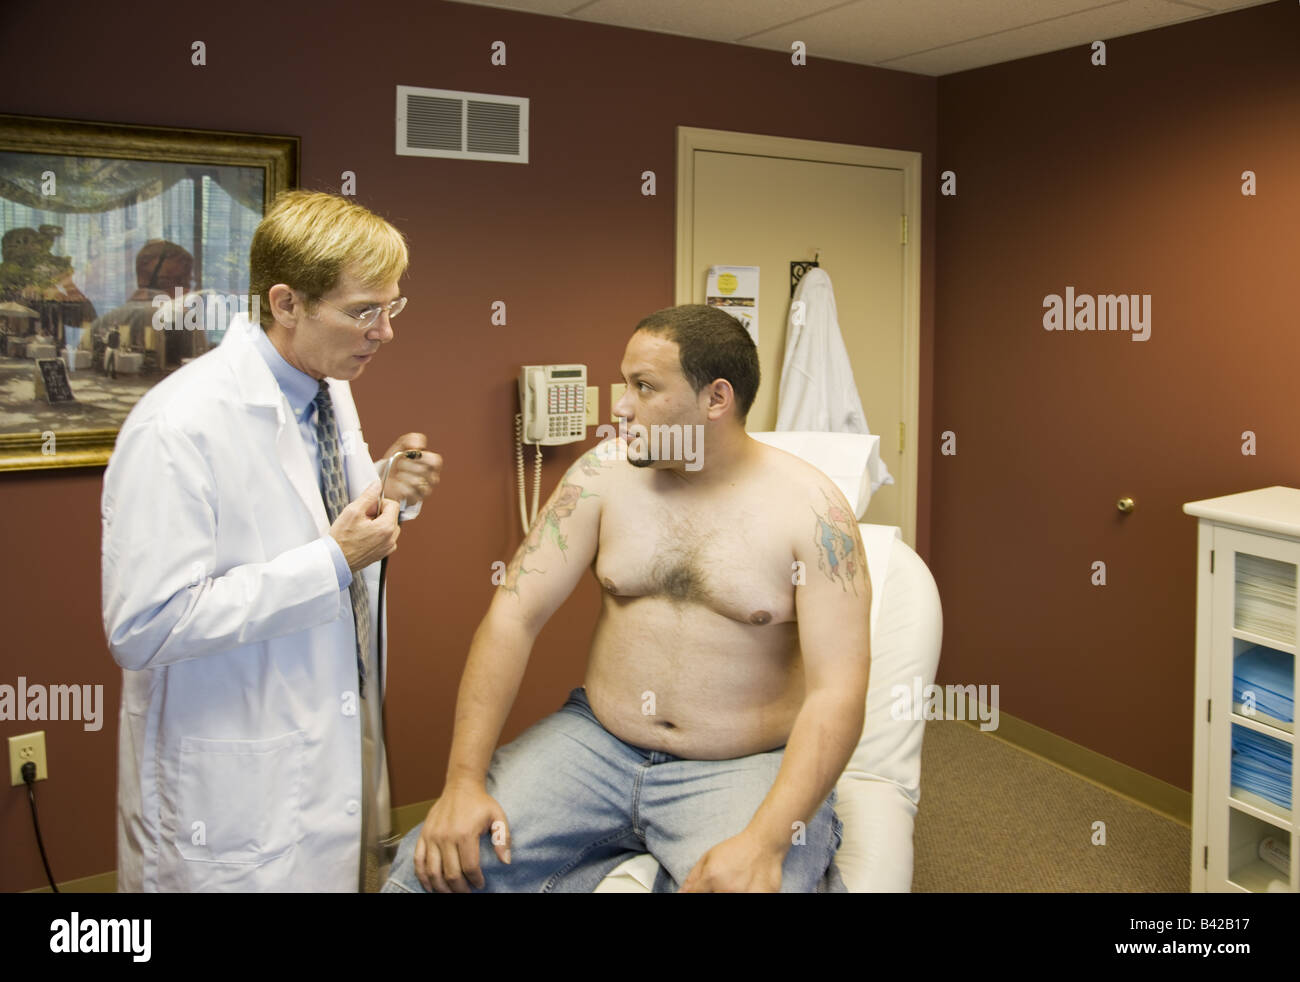 Tattooed patient gets examined by doc